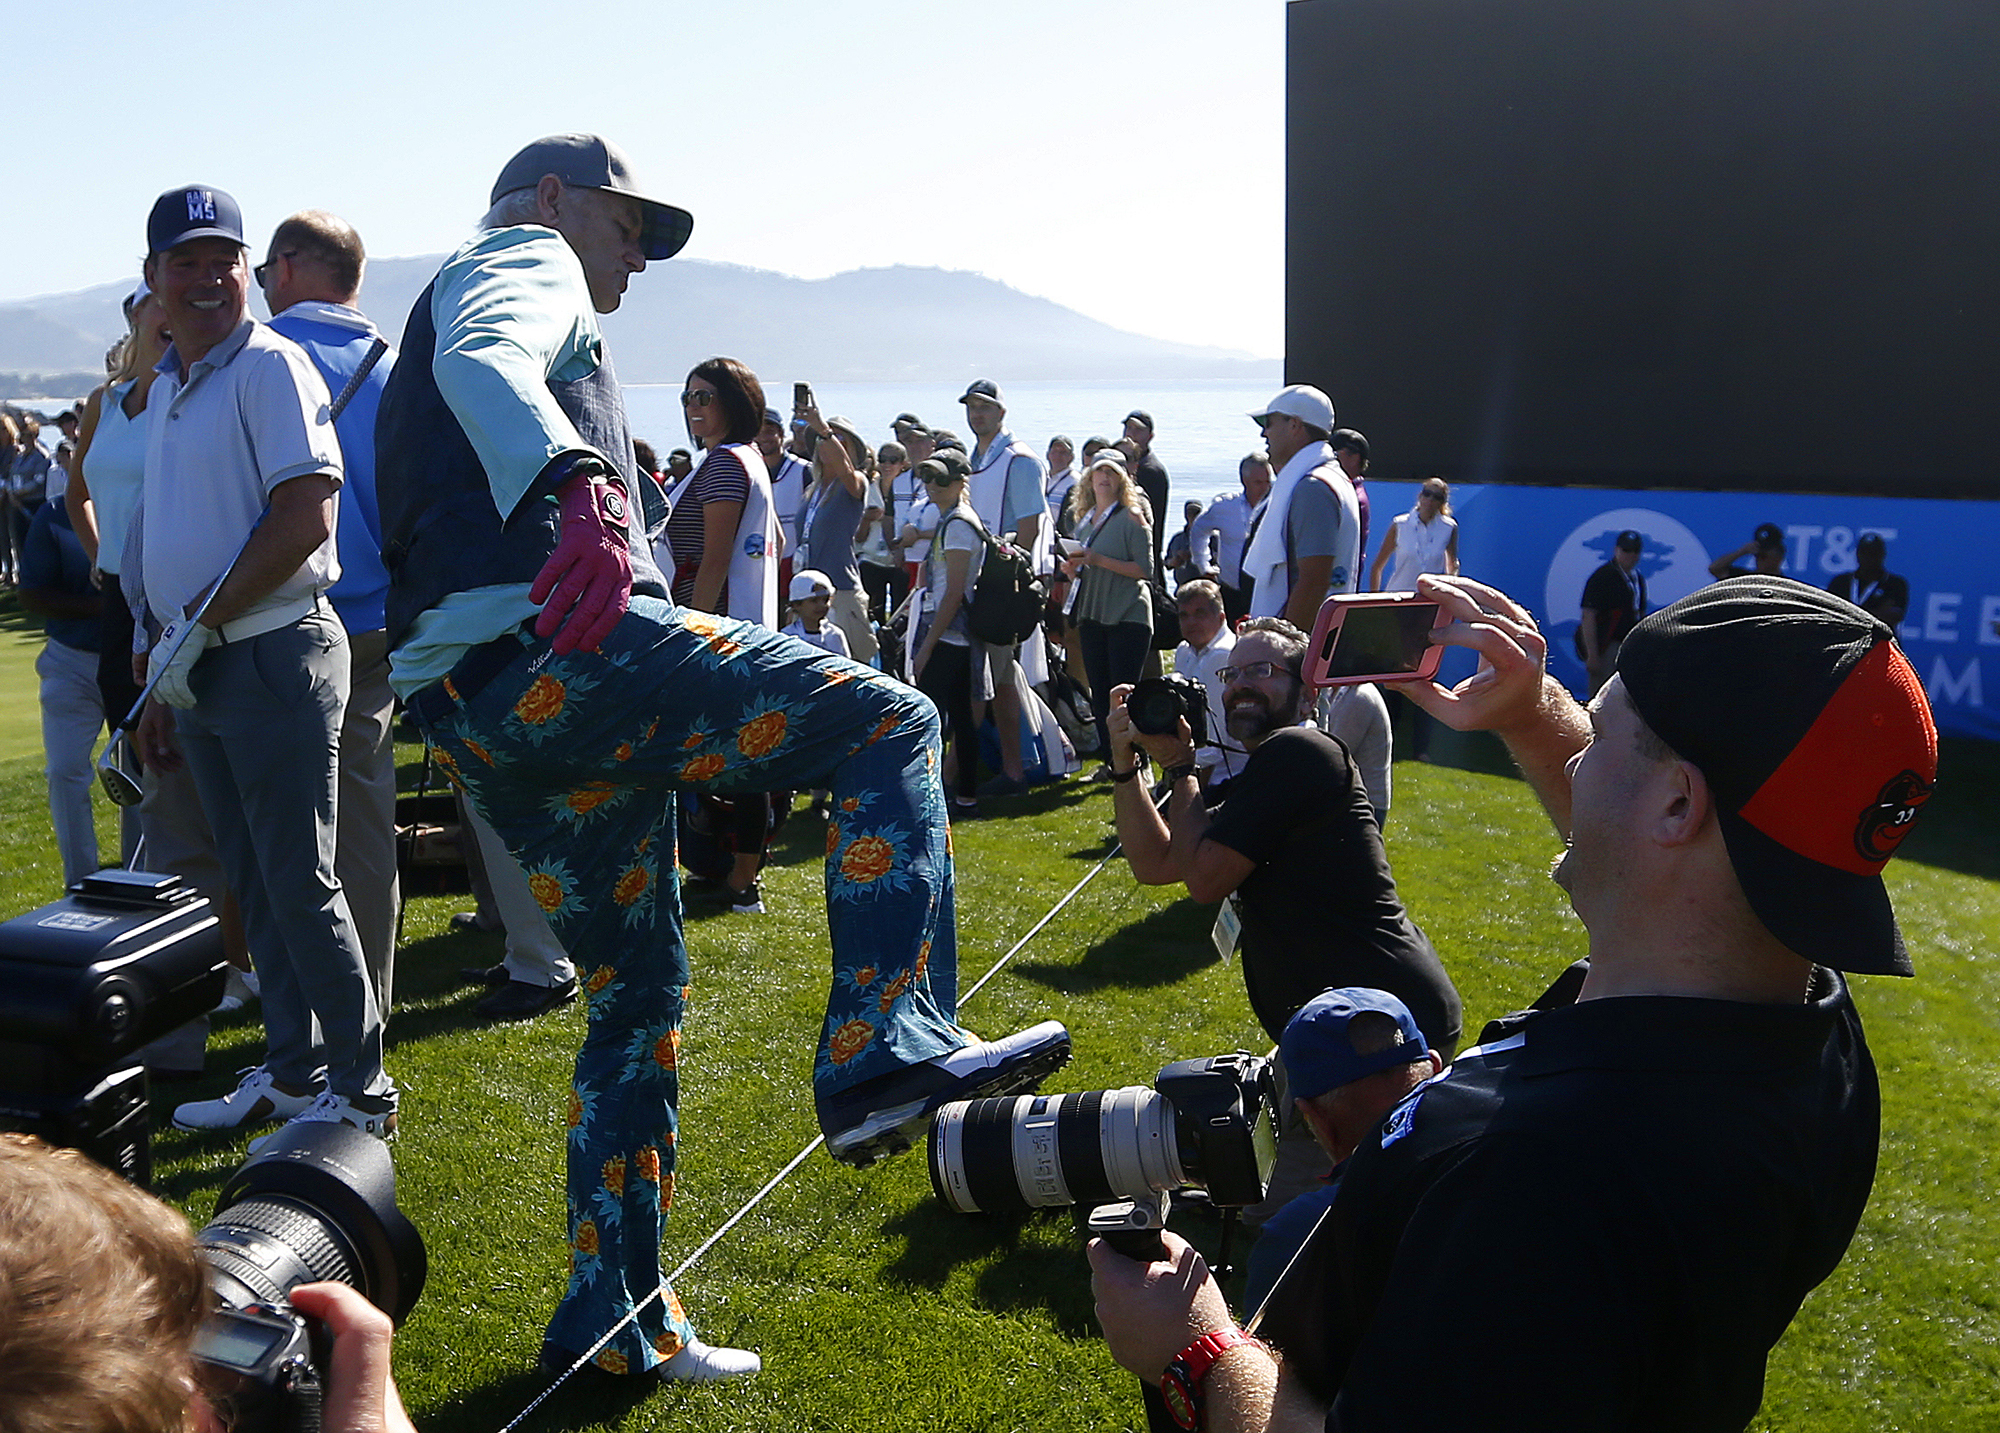 Aaron Rodgers sinks birdie putt at Pebble Beach Pro